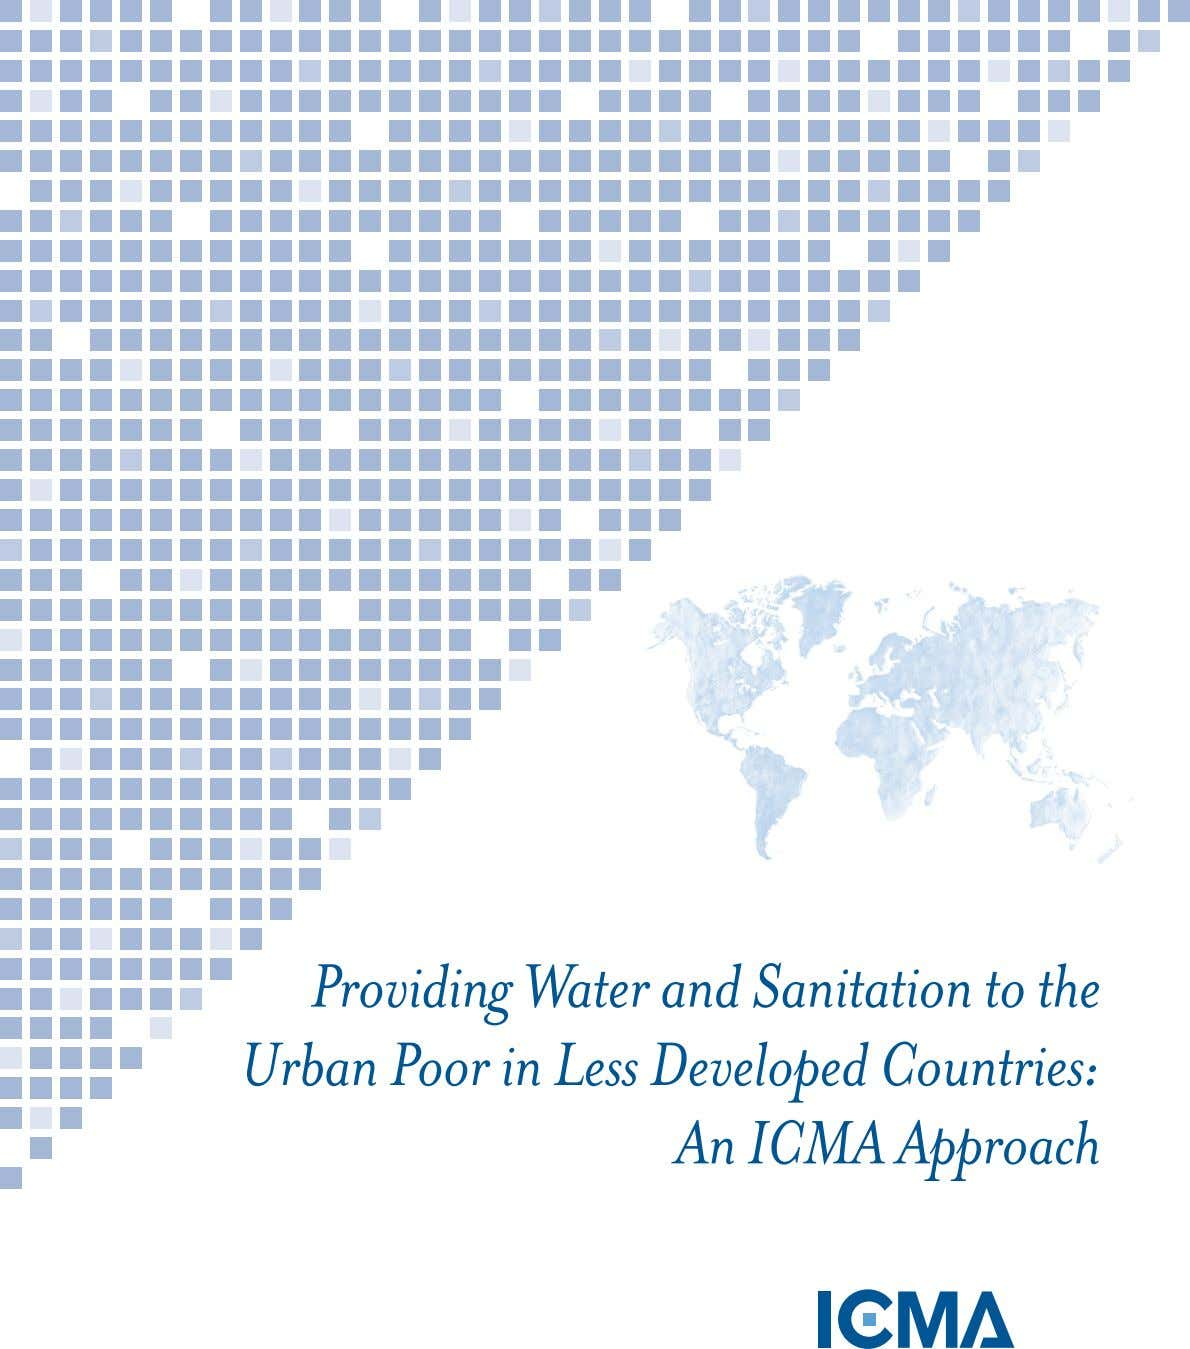 Providing Water and Sanitation to the Urban Poor in Less Developed Countries: An ICMA Approach